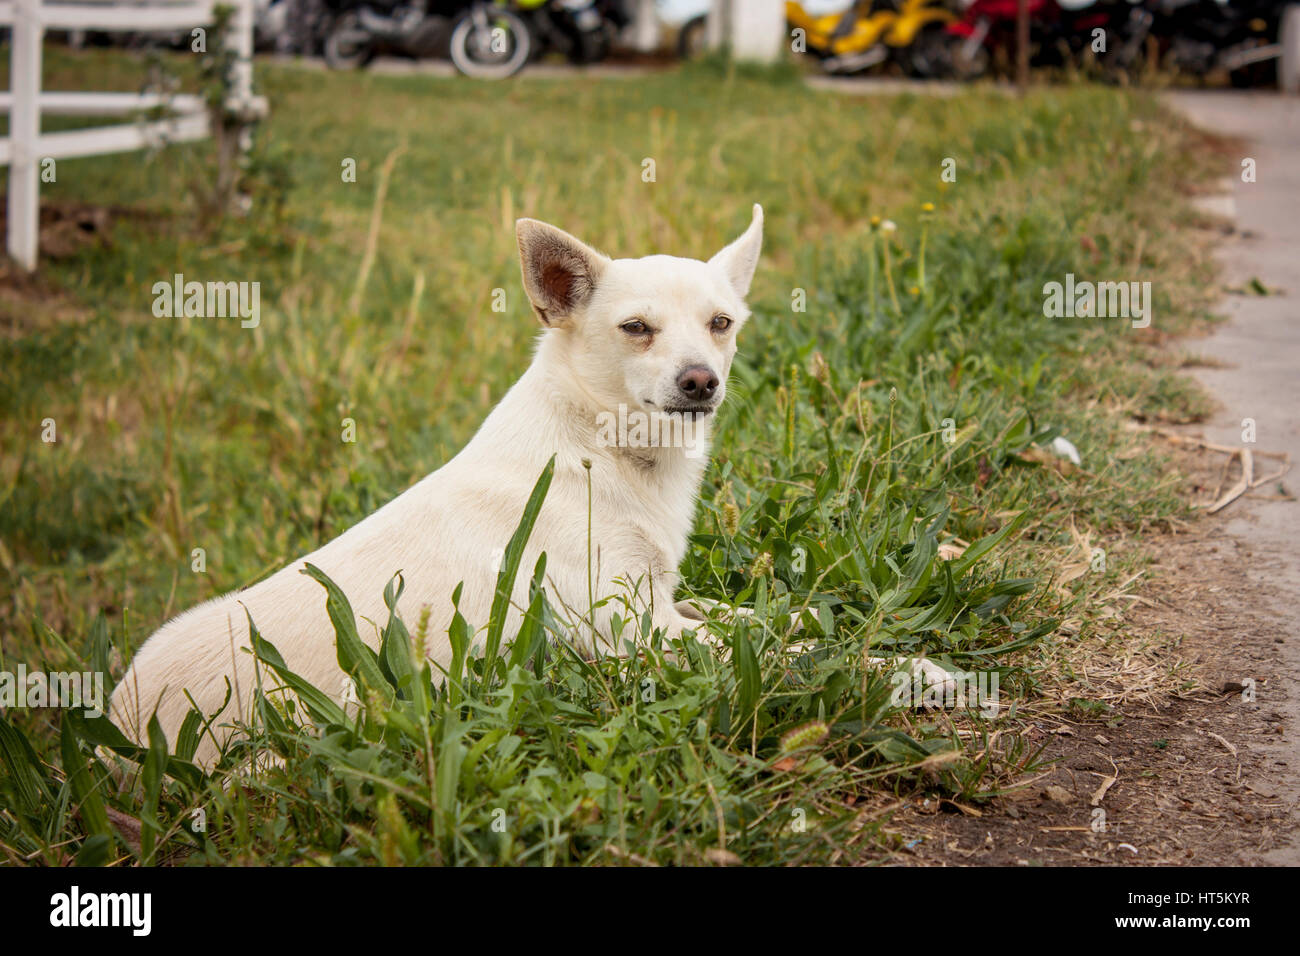 Small dog intent to play intrigued between the fresh grass of the farm - Stock Image